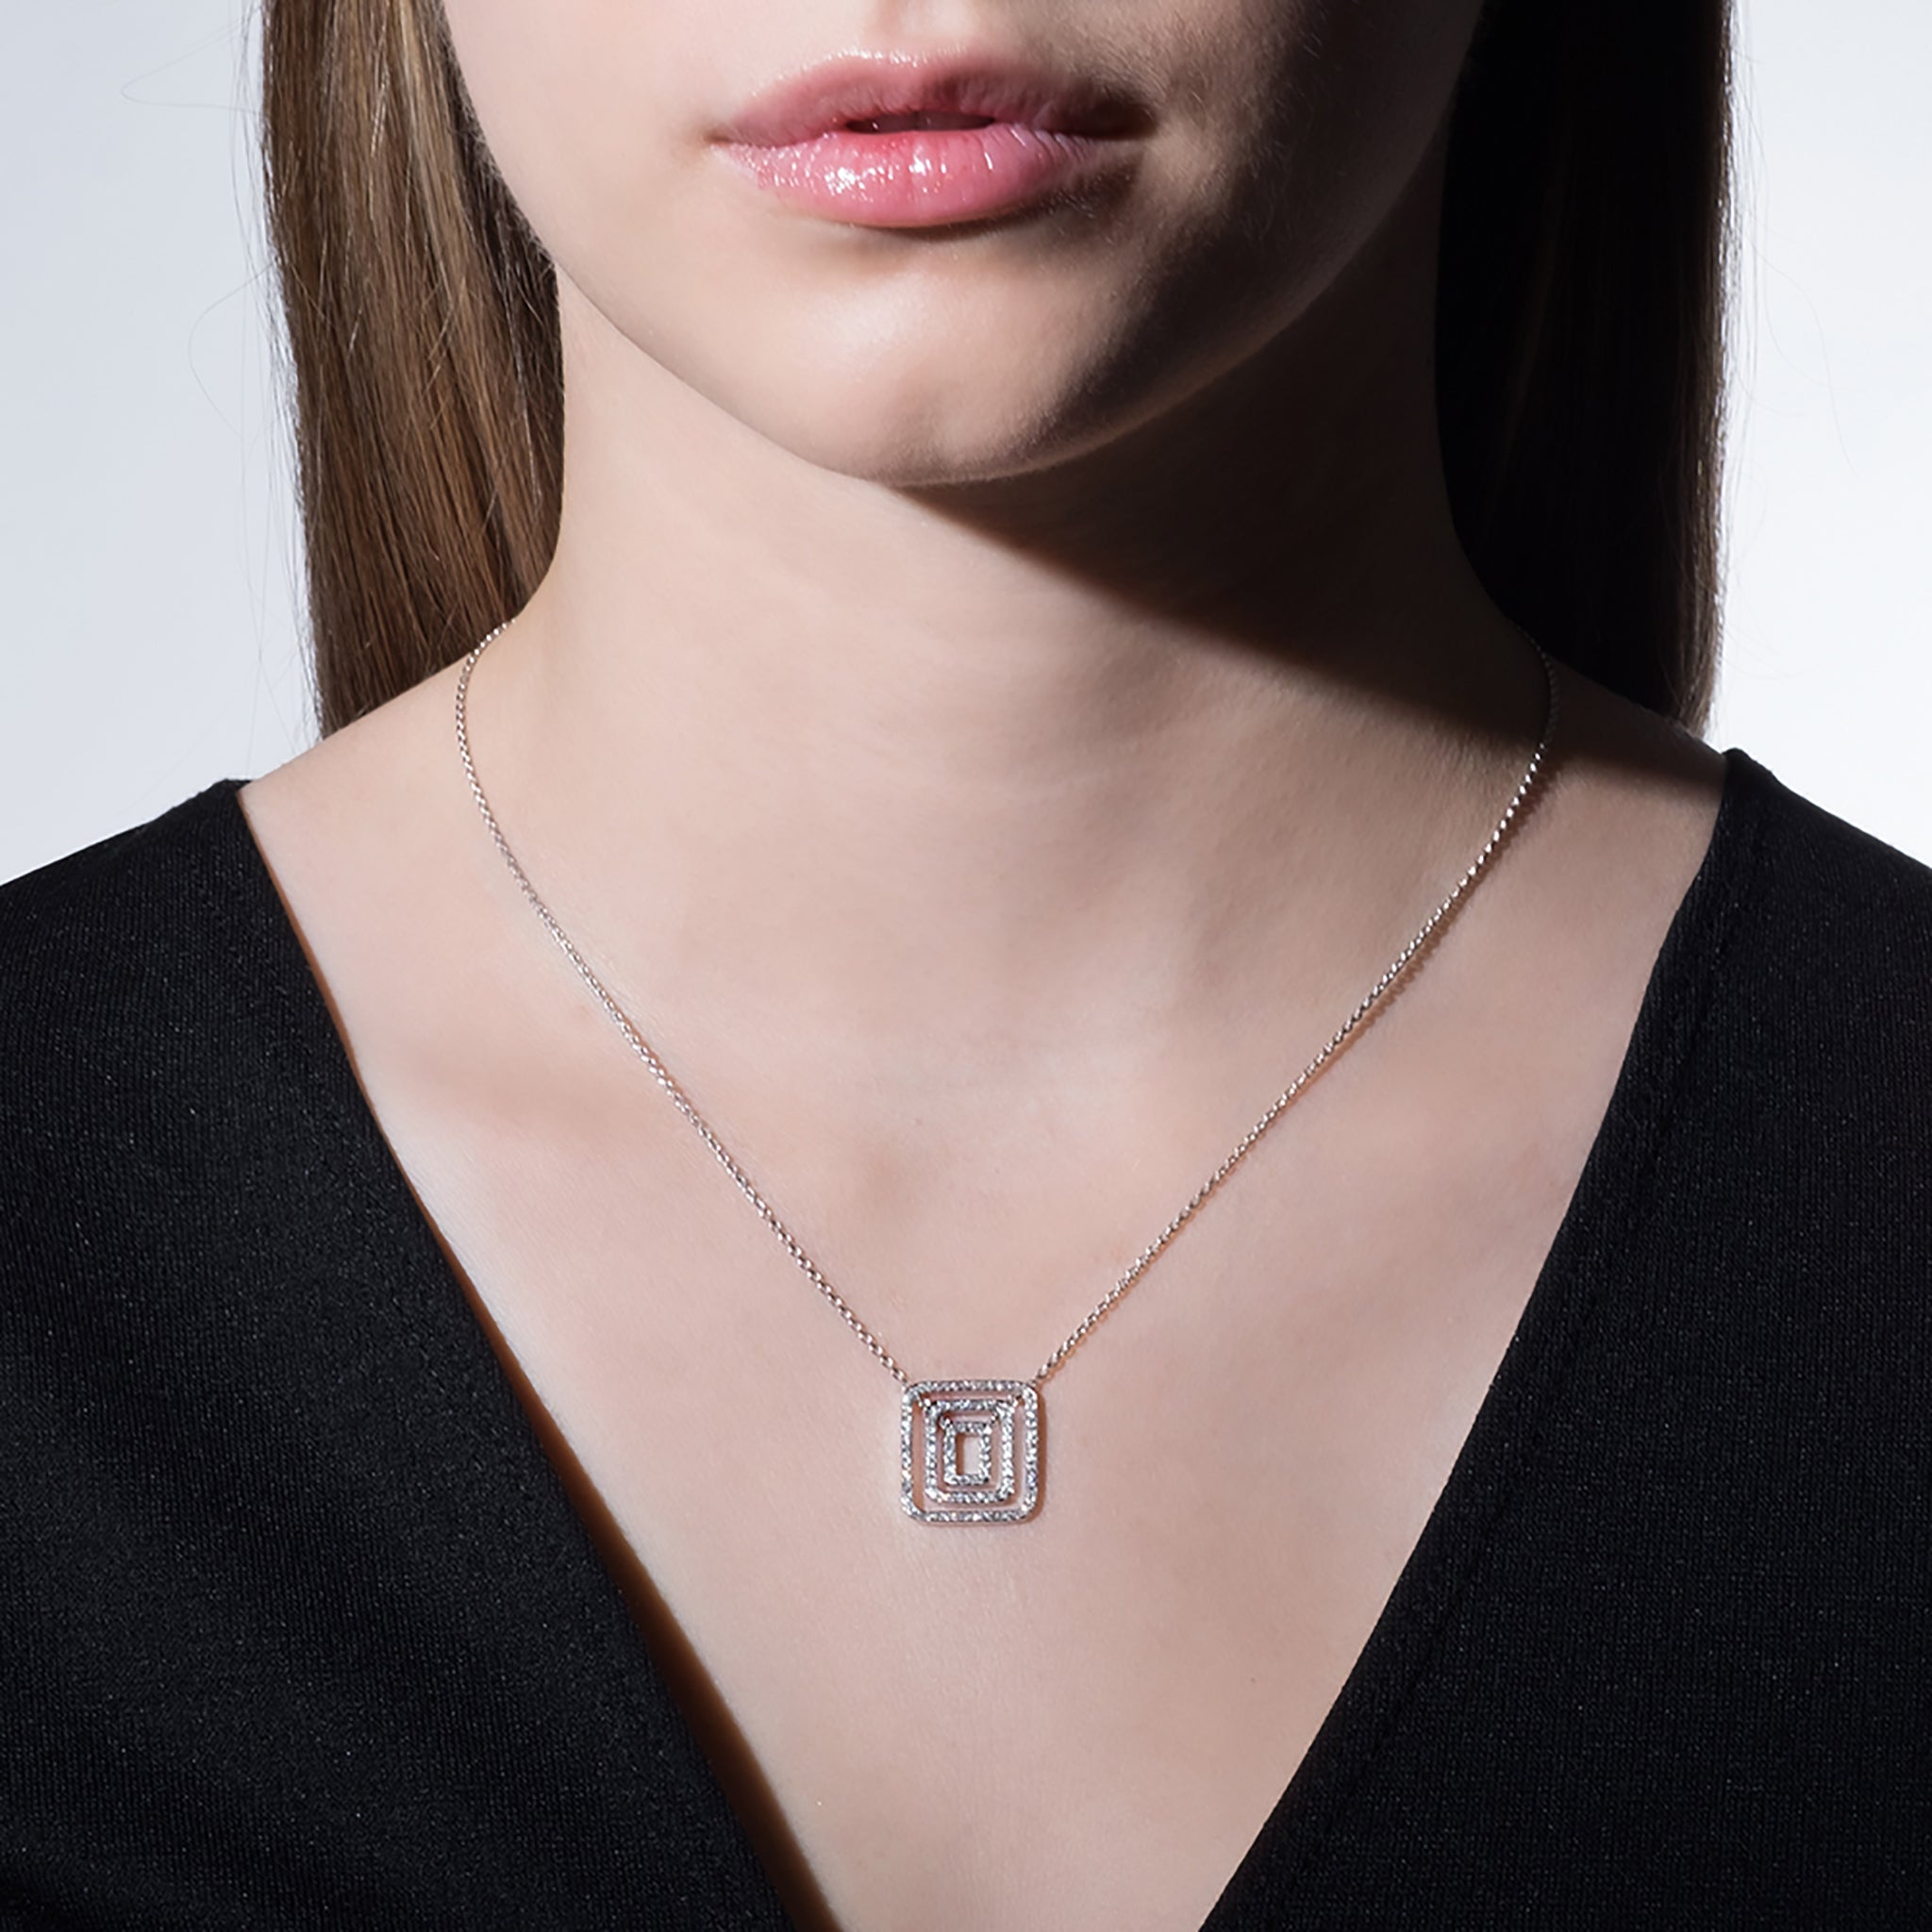 Mimi-So-Piece-Square-Swing-Diamond-Necklace